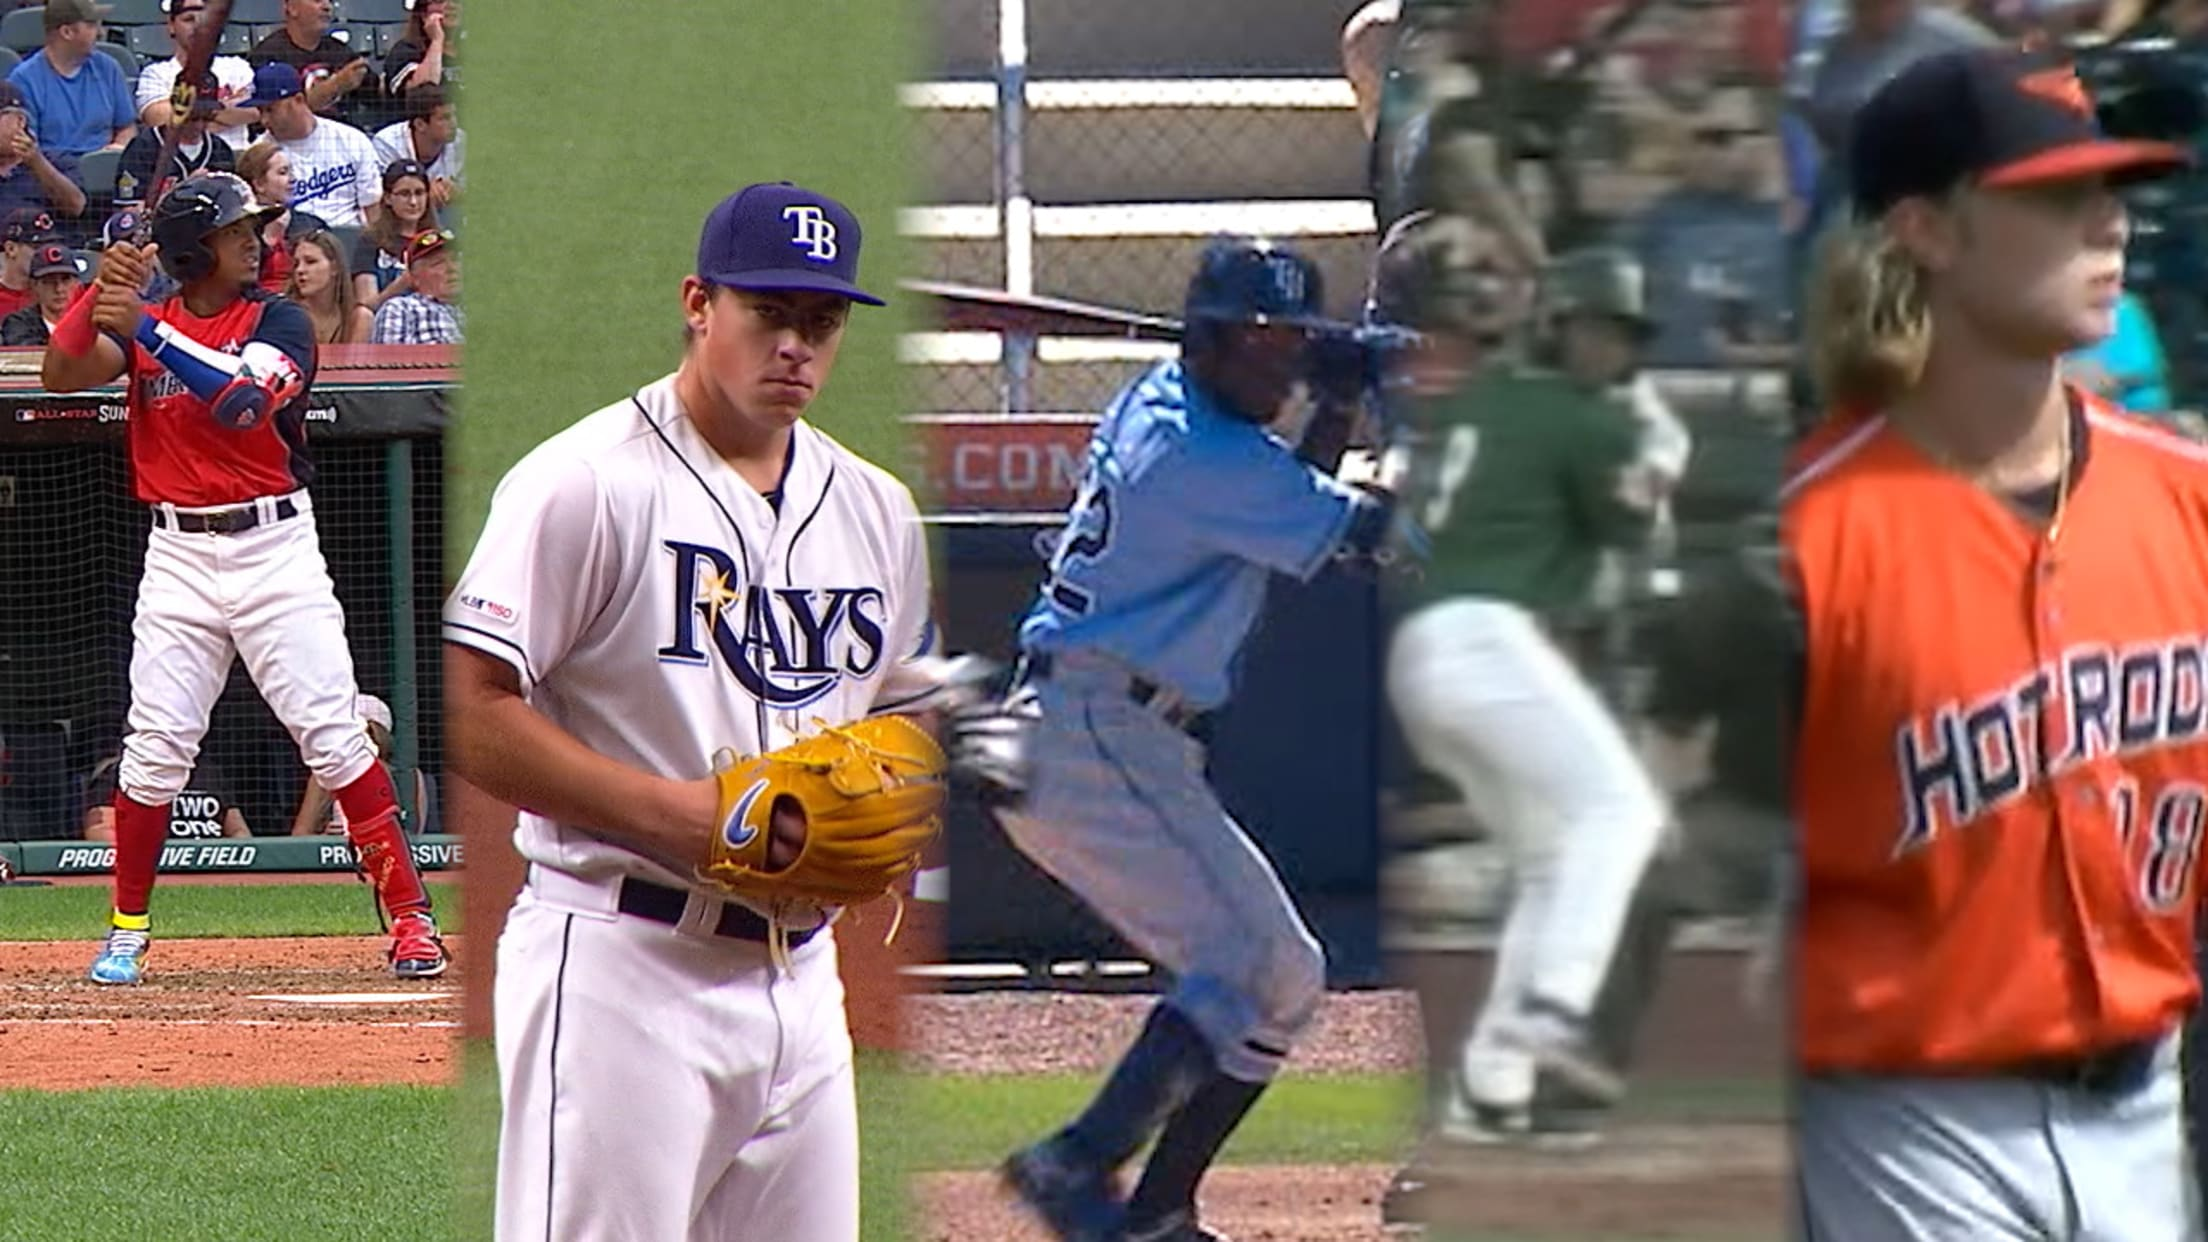 Rays prospects on the rise